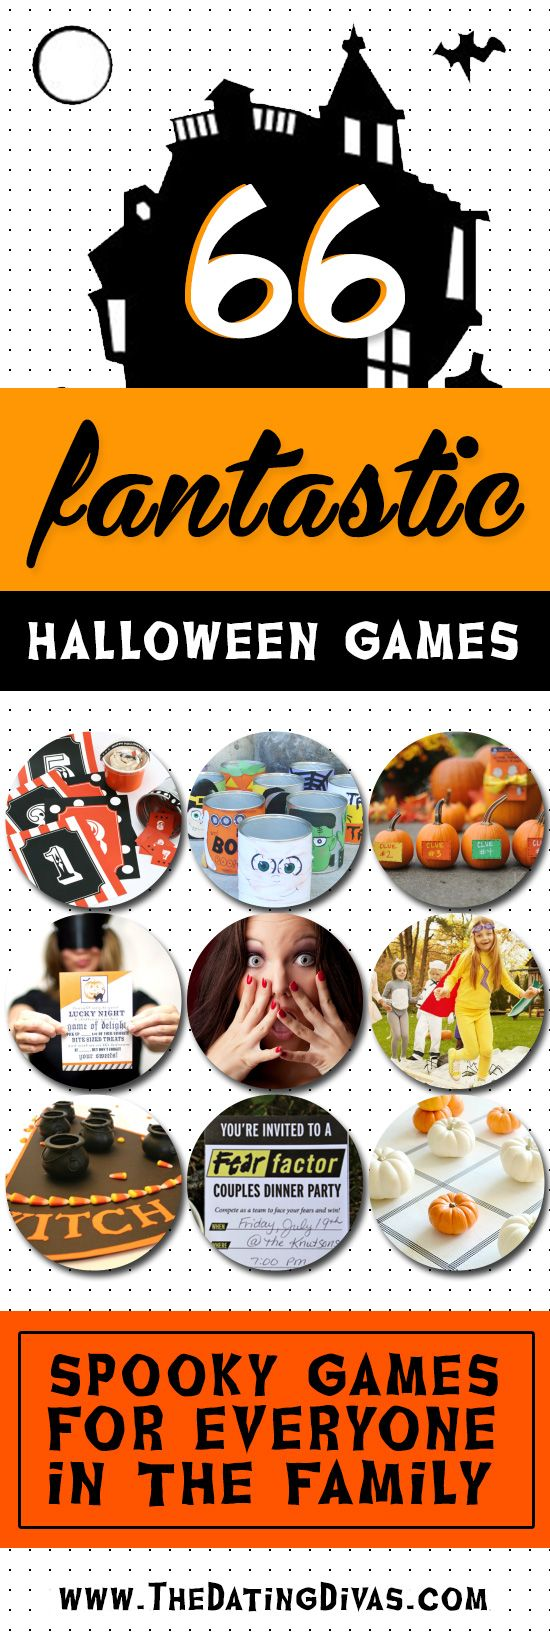 Halloween games for the whole family! YES!! I can't wait to have a Halloween party! www.TheDatingDivas.com